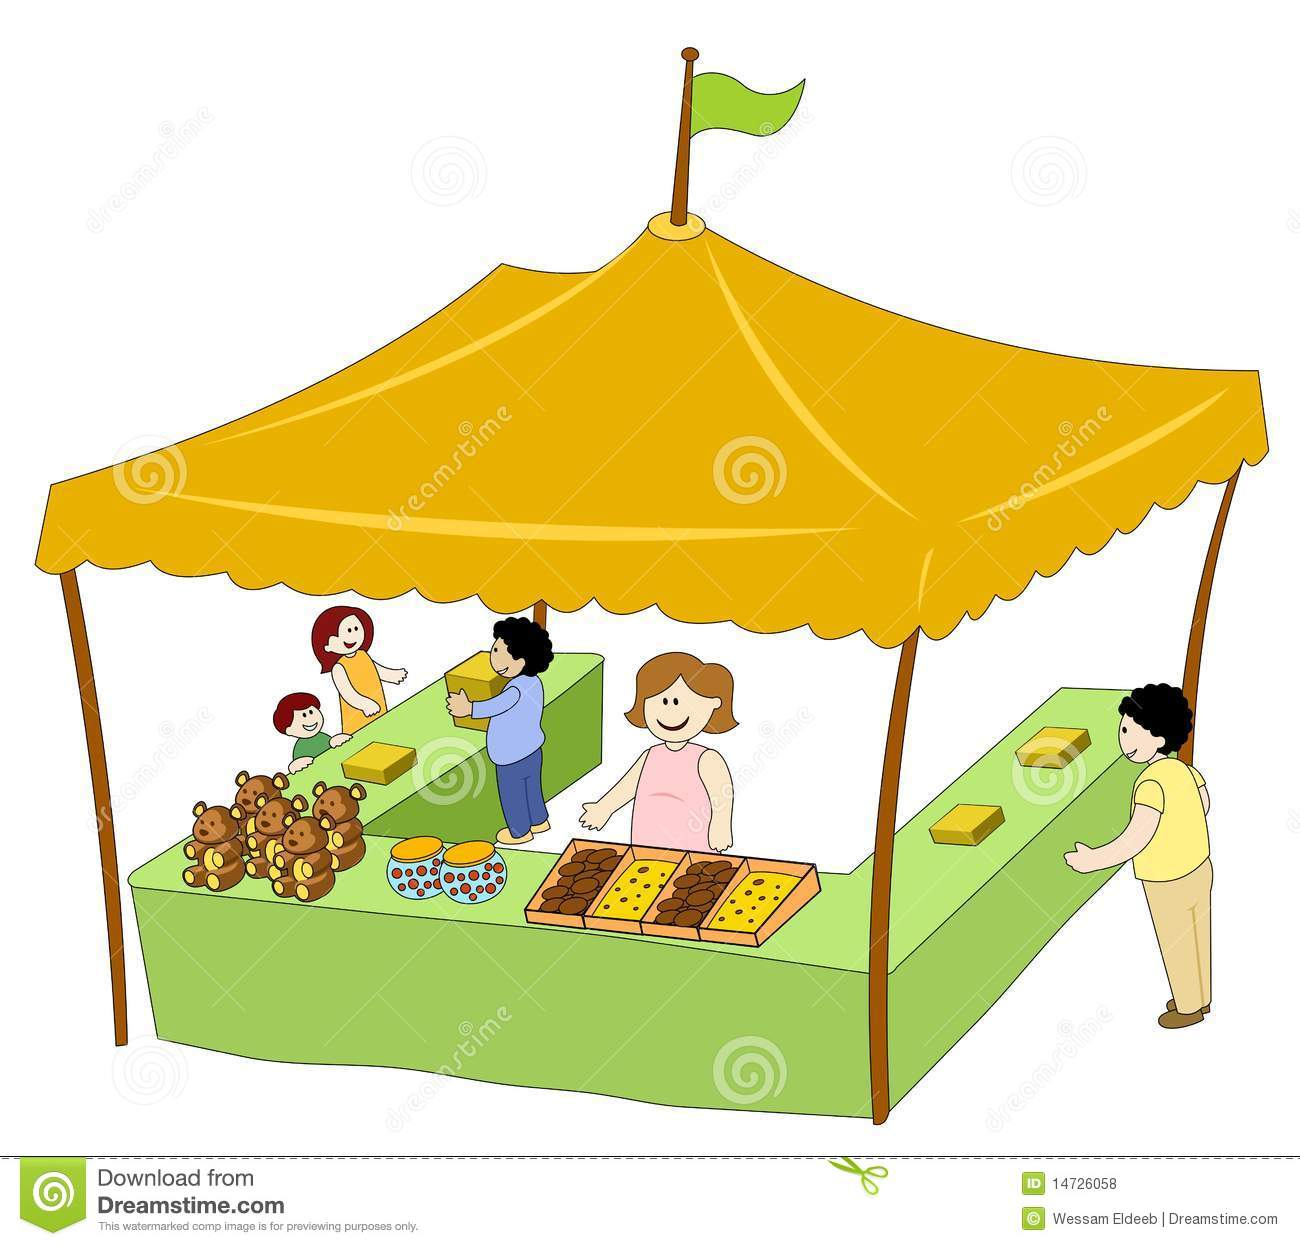 Exhibition Stall Vector : Food beverage tent royalty free stock photos image